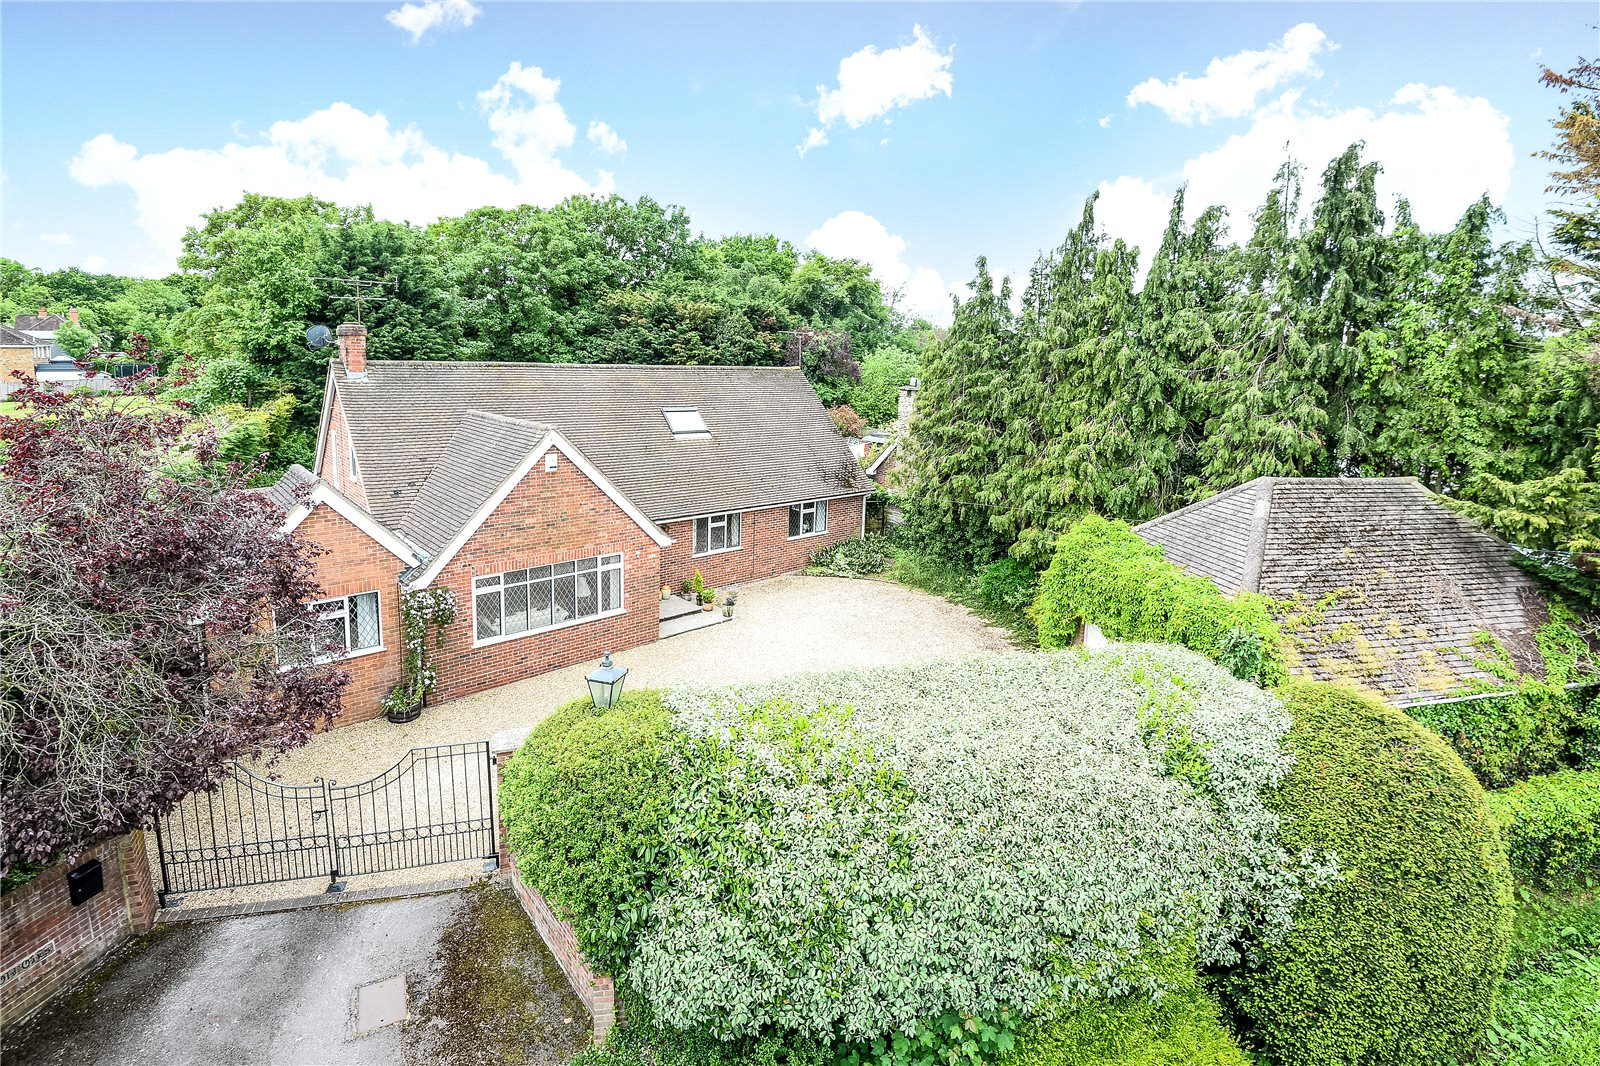 4 Bedrooms Detached Bungalow for sale in Warfield Street, Warfield, Berkshire, RG42